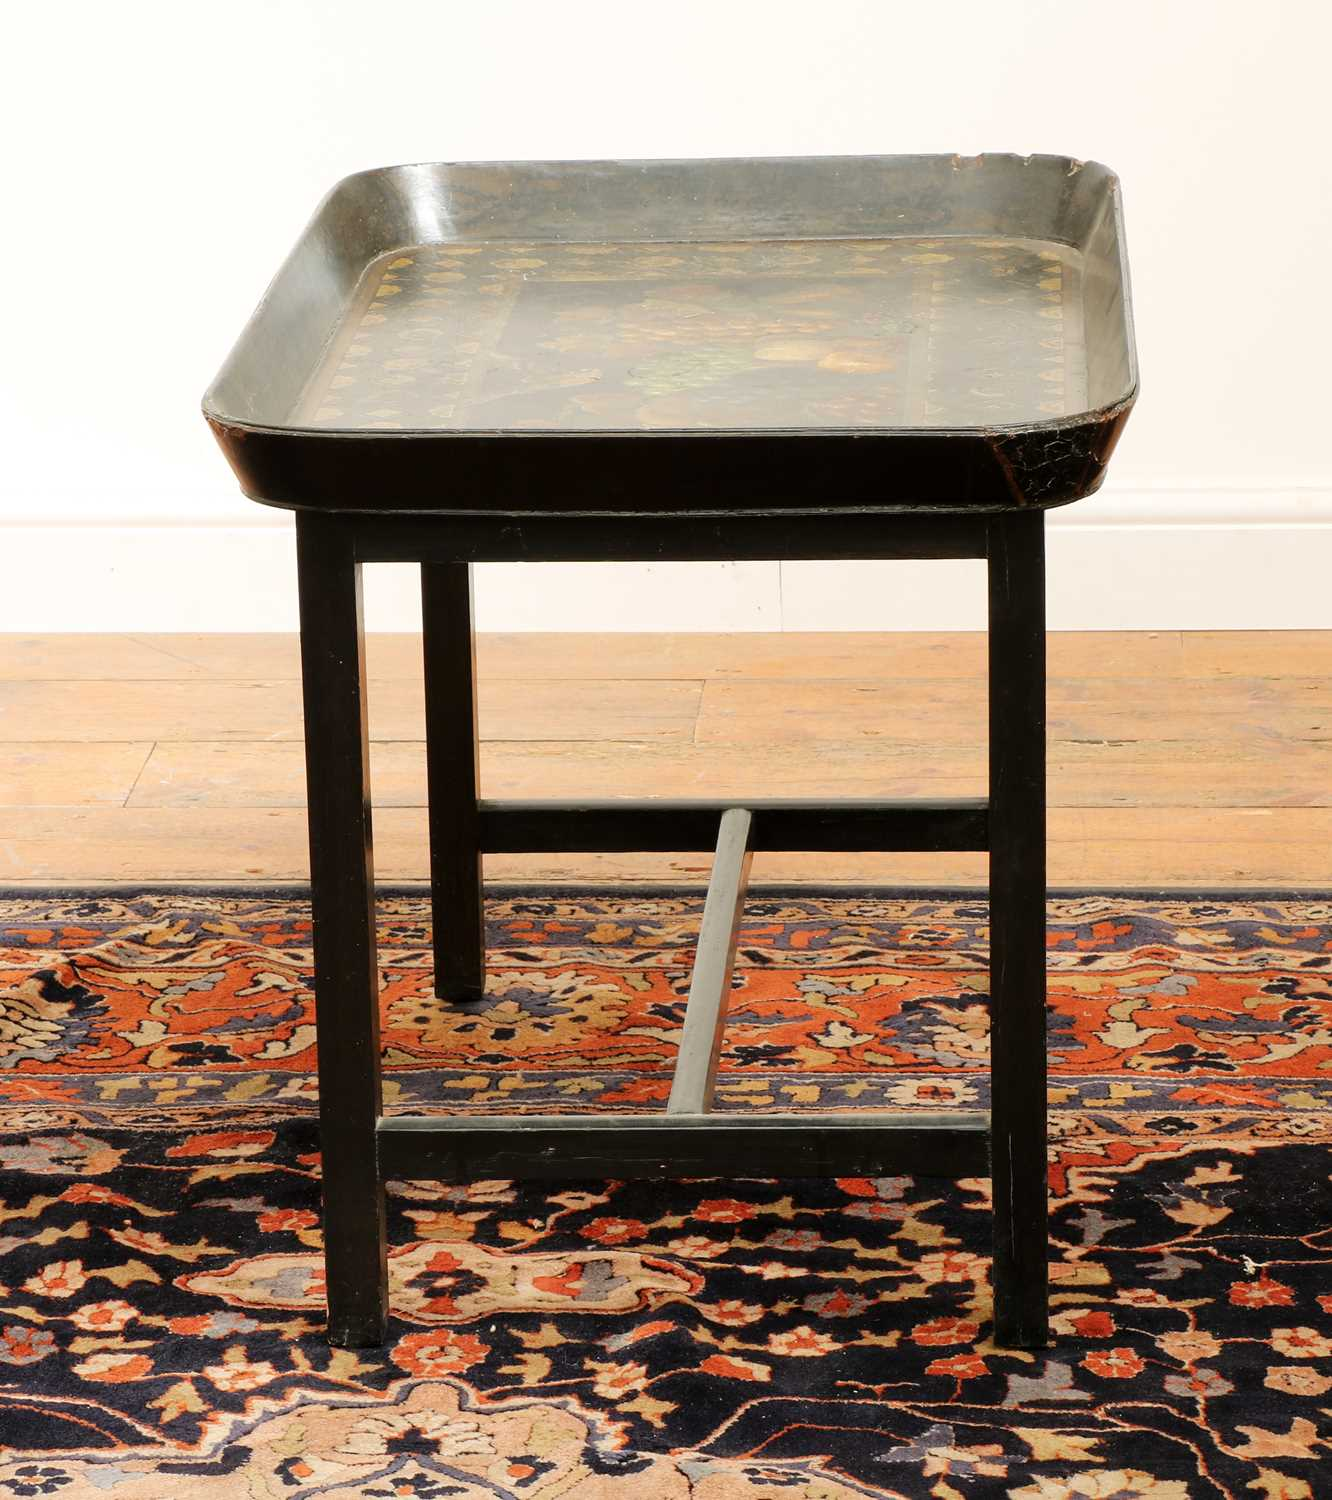 A Regency black lacquer galleried tray on stand, - Image 4 of 5